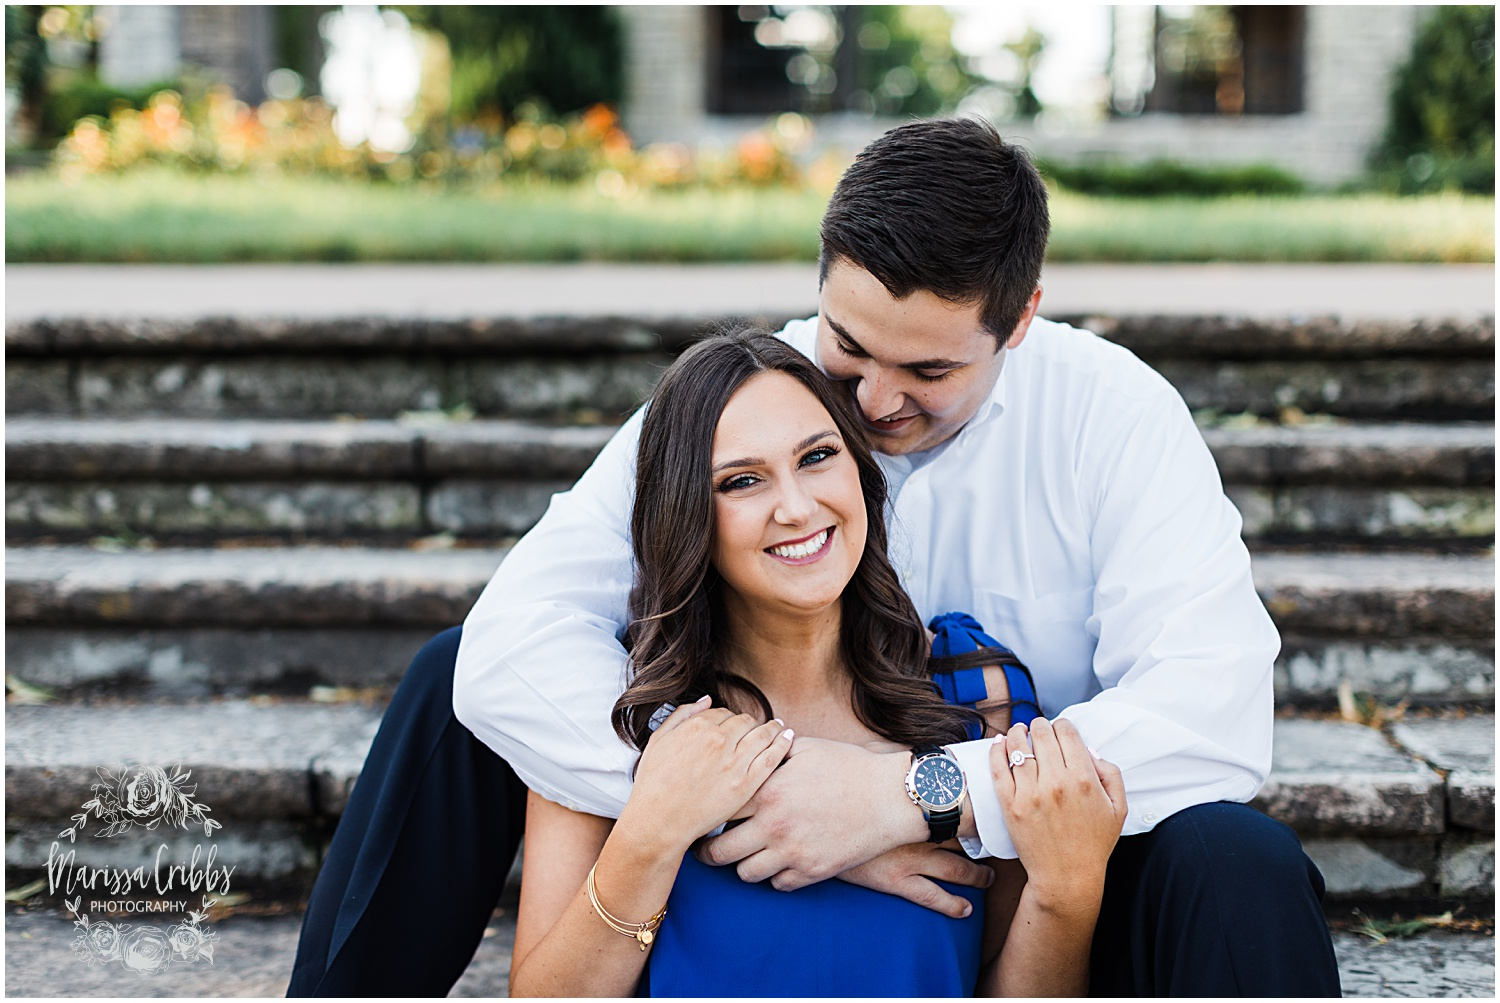 MORGAN & KEVIN ENGAGEMENT BLOG | MARISSA CRIBBS PHOTOGRAPHY_8275.jpg